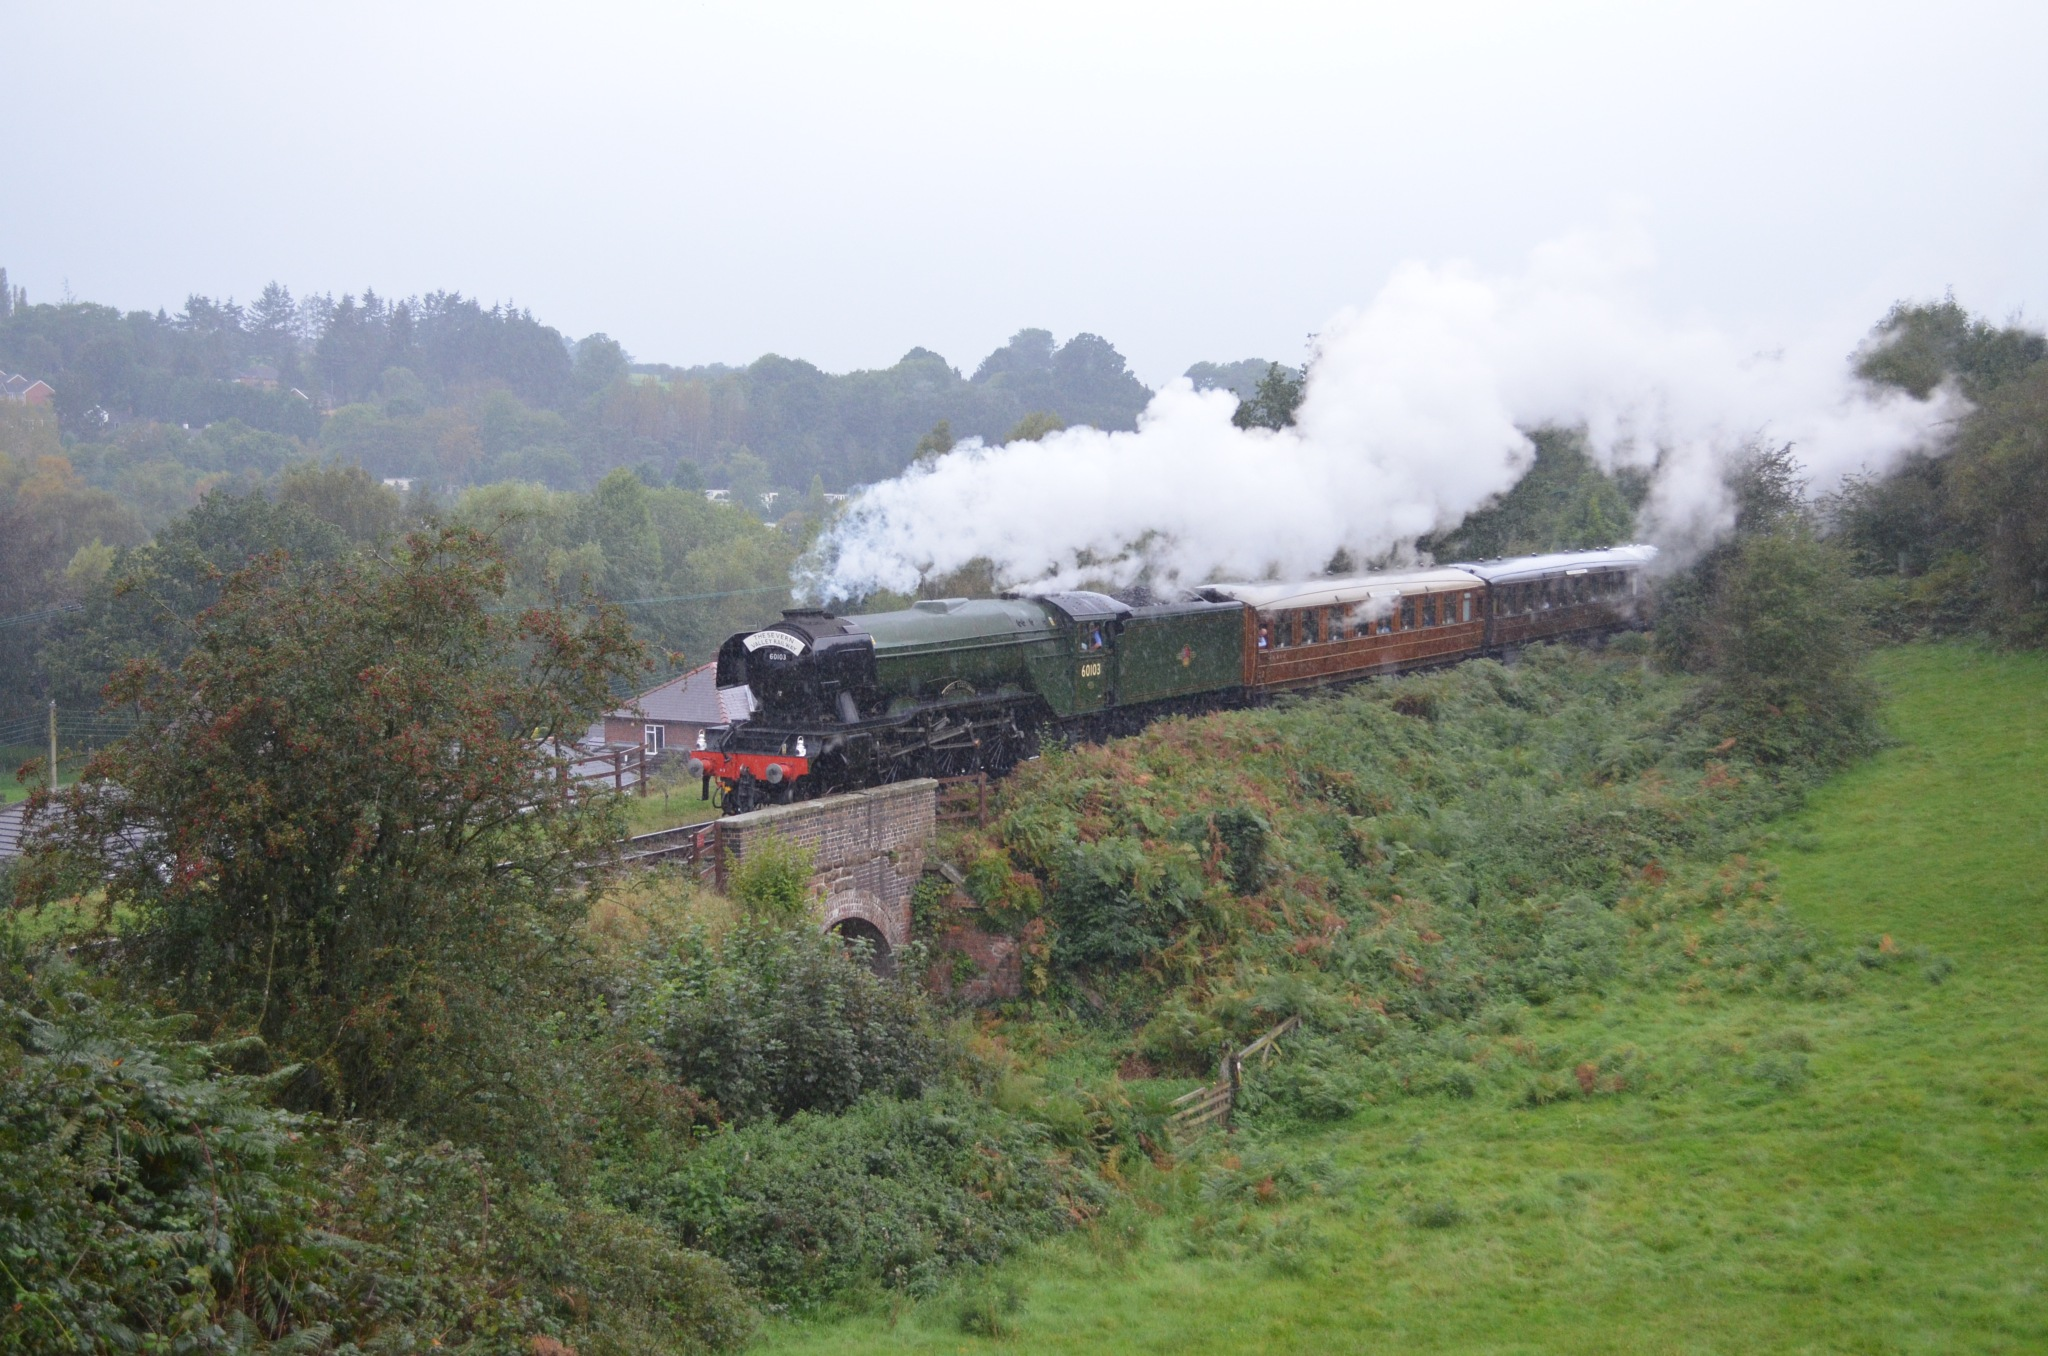 The Flying Scotsman approaching Bewdley in the rain by adrian.williams.58323